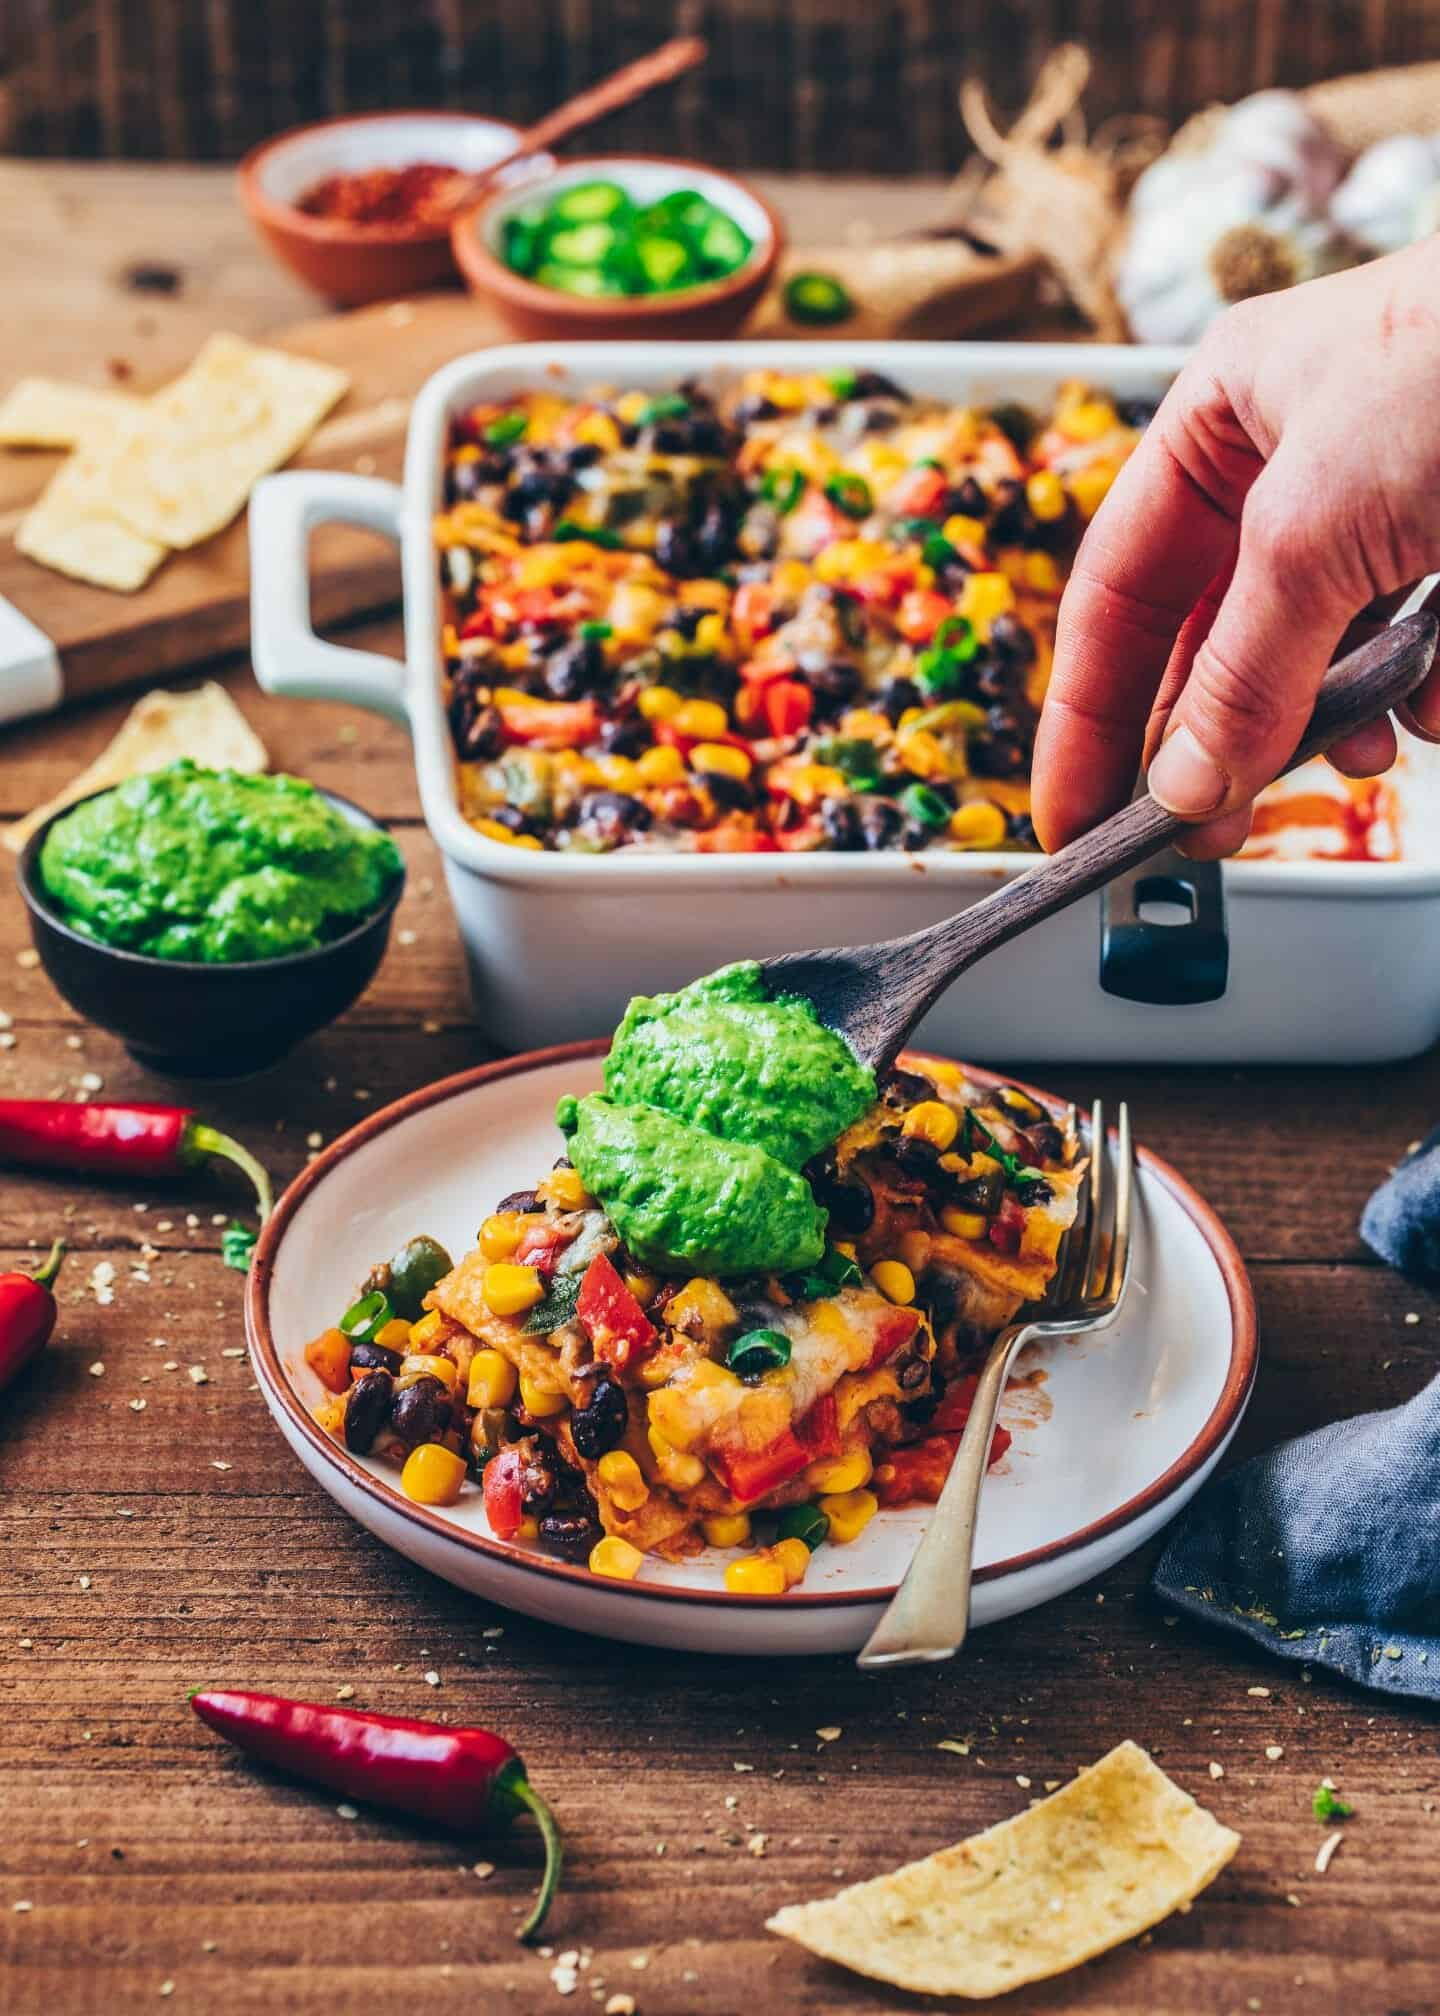 This Mexican Tortilla Casserole is an easy to make, healthy and delicious Vegan Enchilada Lasagna loaded with Vegetables and gluten-free Corn Tortillas.